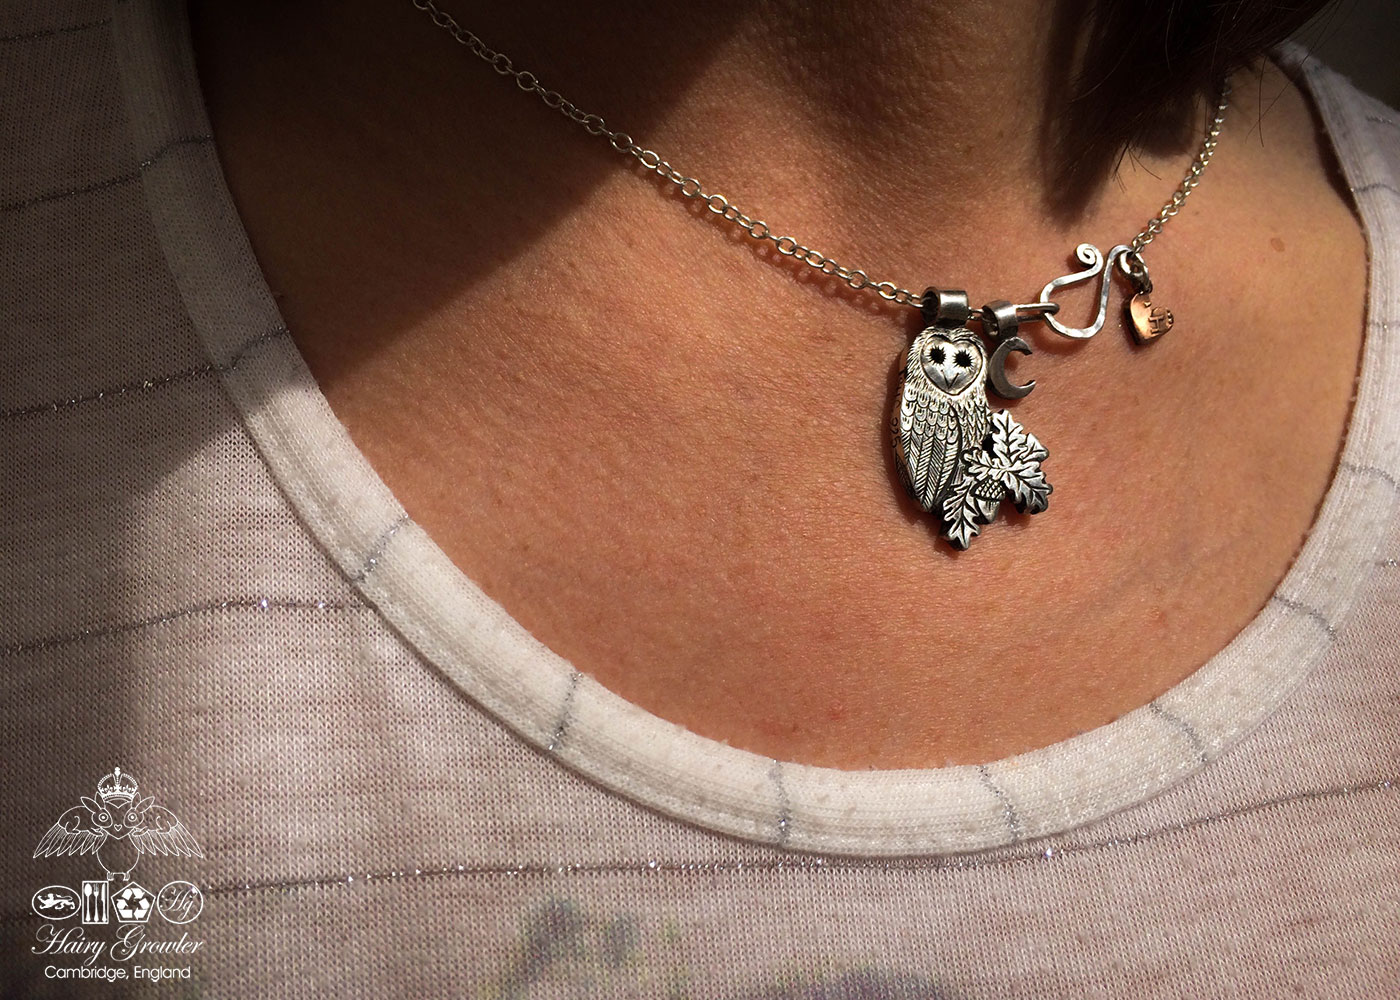 Barn owl necklace handmade and recycled silver coins wise barn owl charm for a tree sculpture or necklace